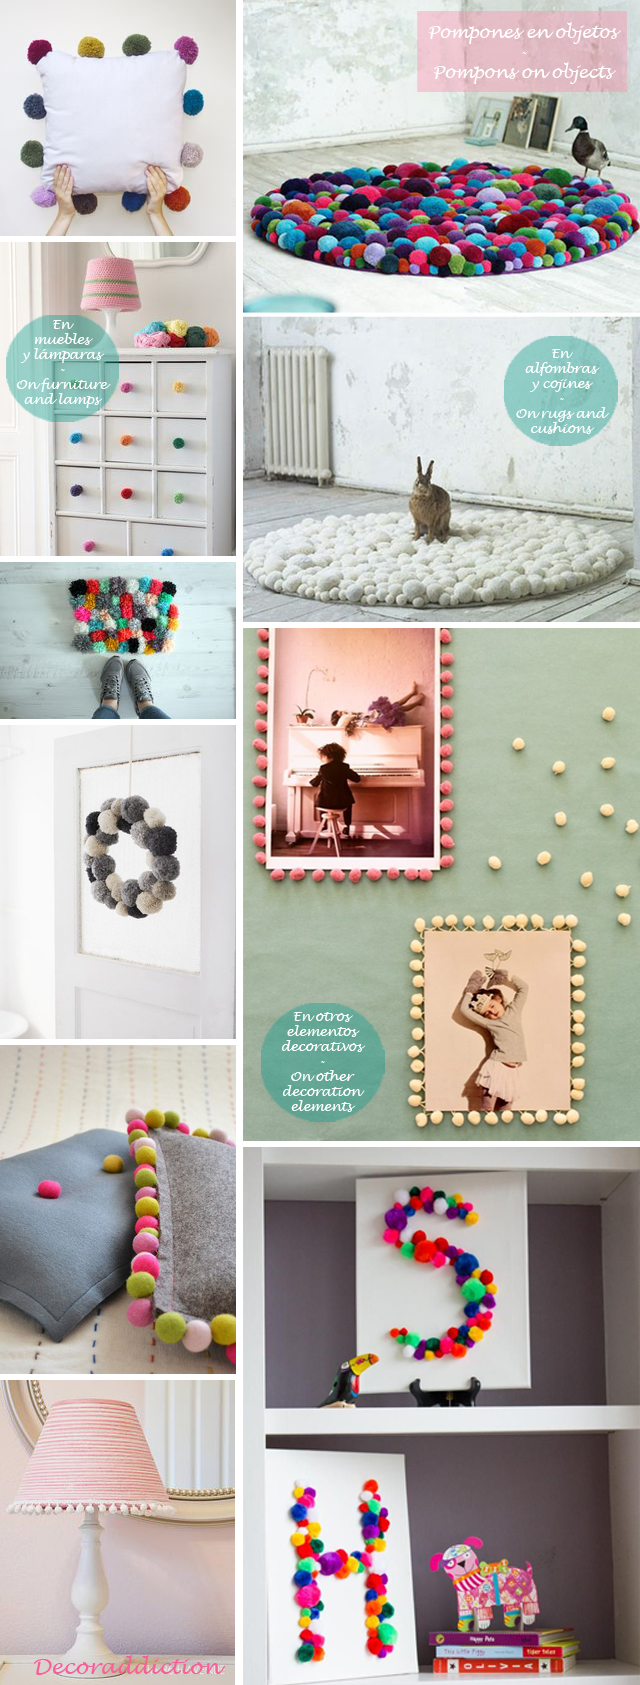 Idea low cost & DIY - Decora con pompones - Decorate with pompons_objetos